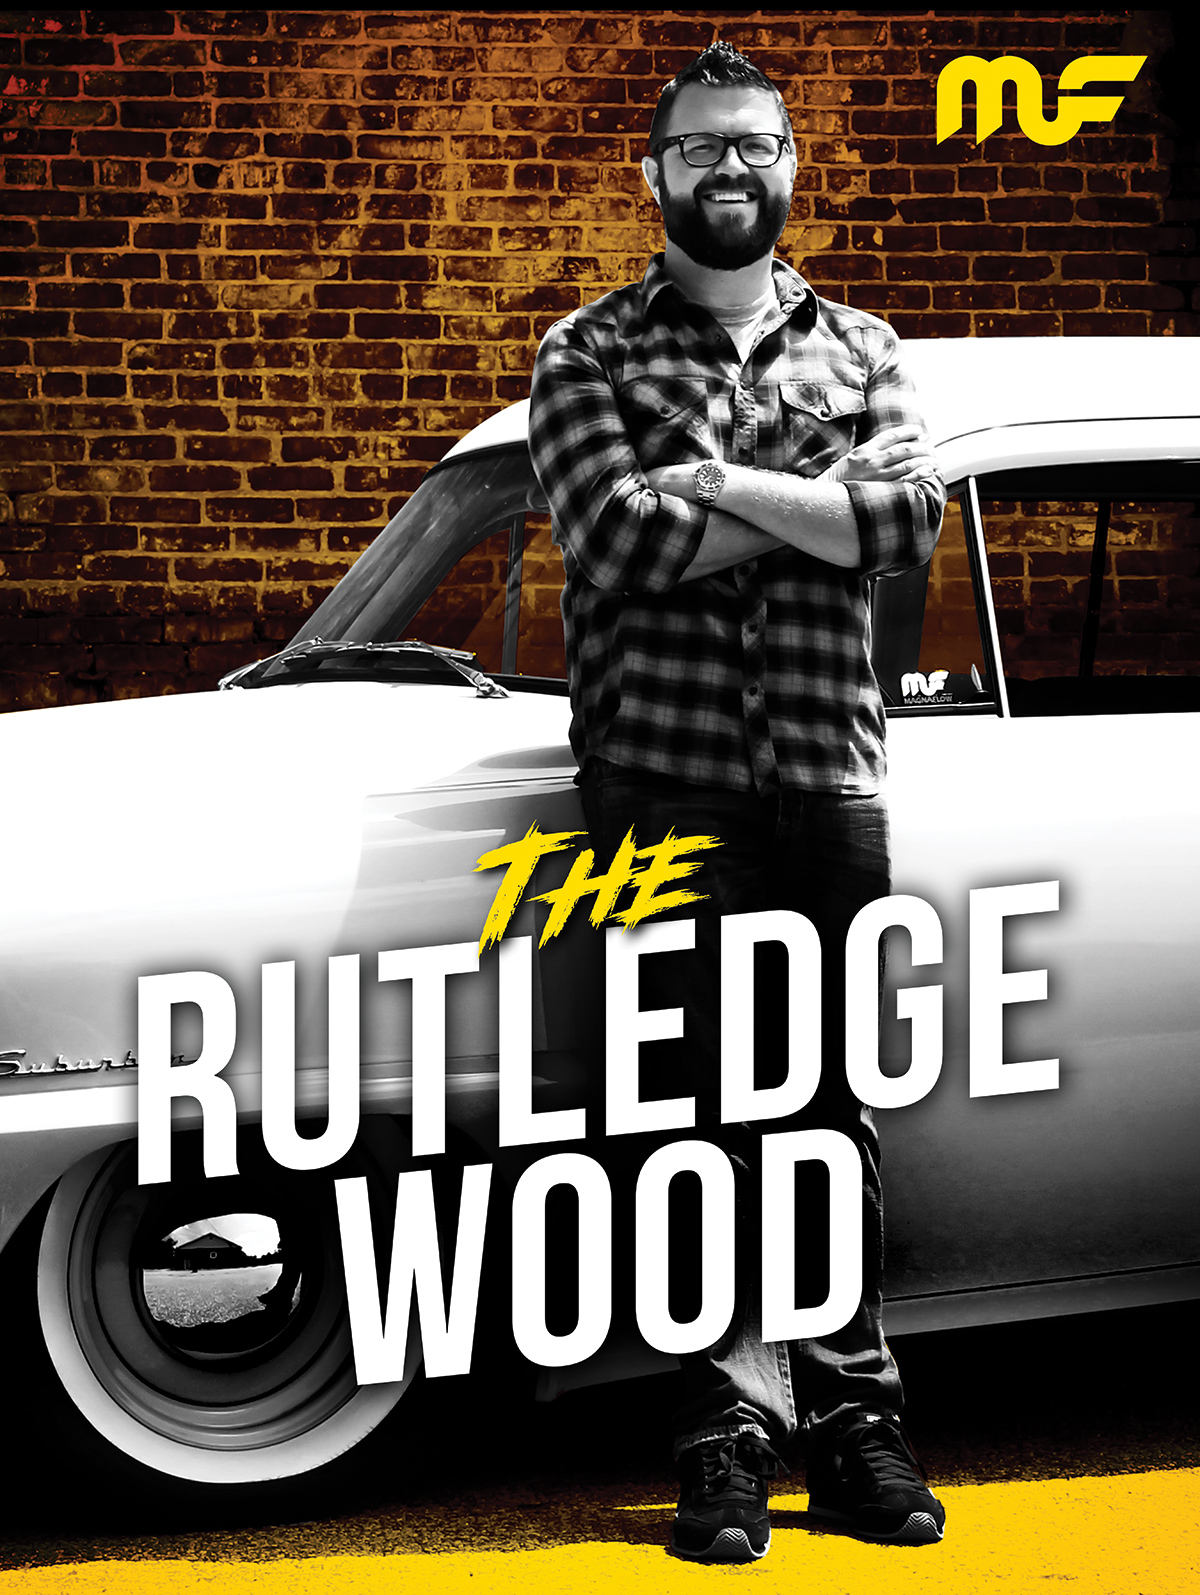 Rutledge_Wood.jpg